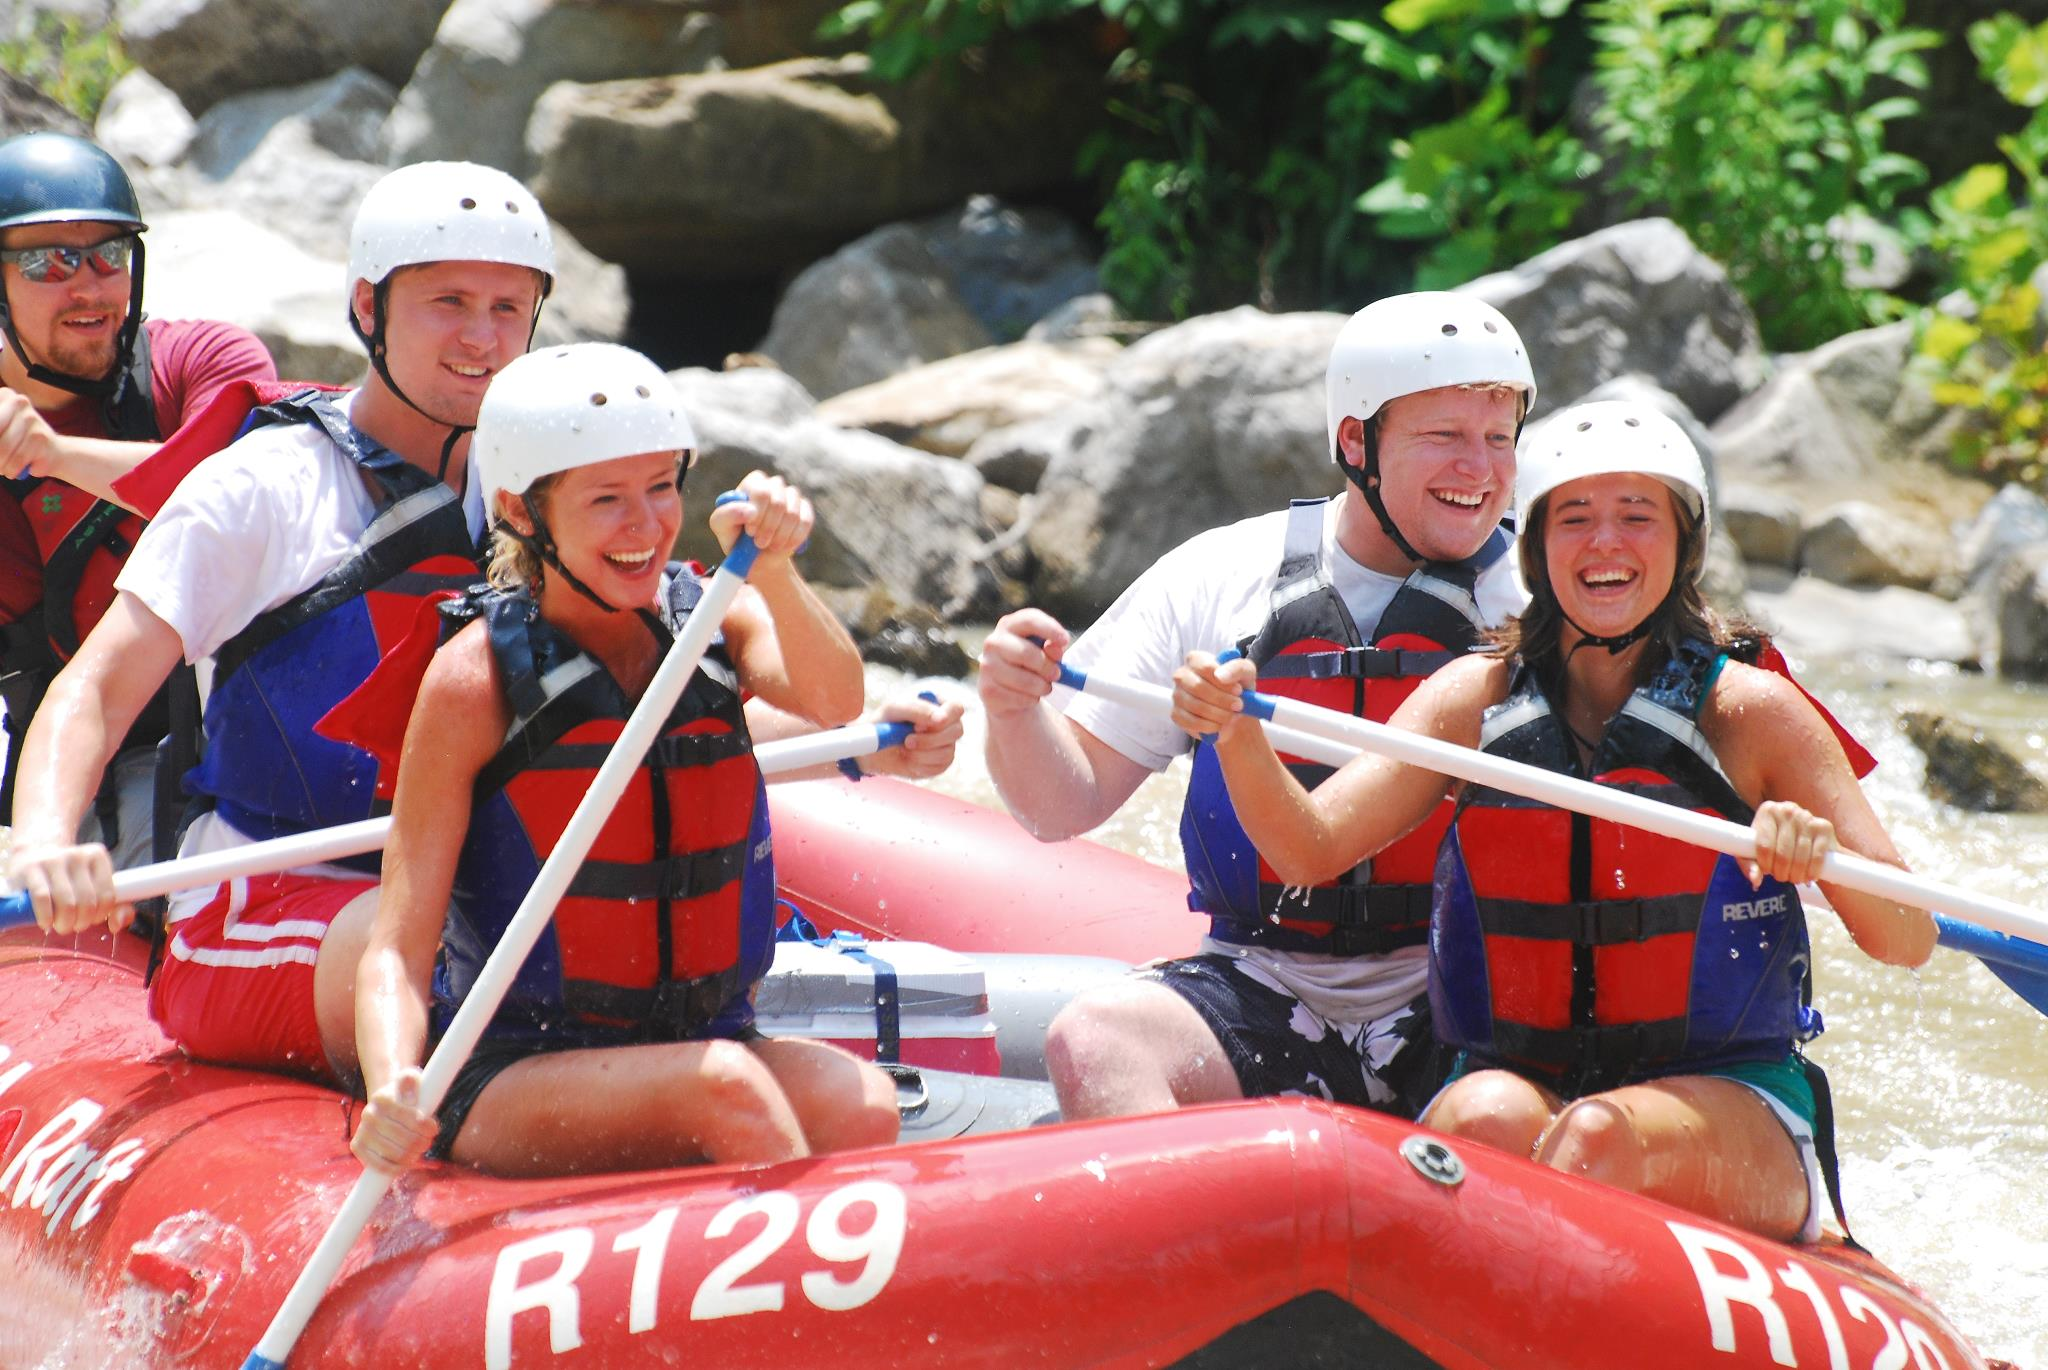 Usa raft footer1 local flavor avl visit explore recreation asheville